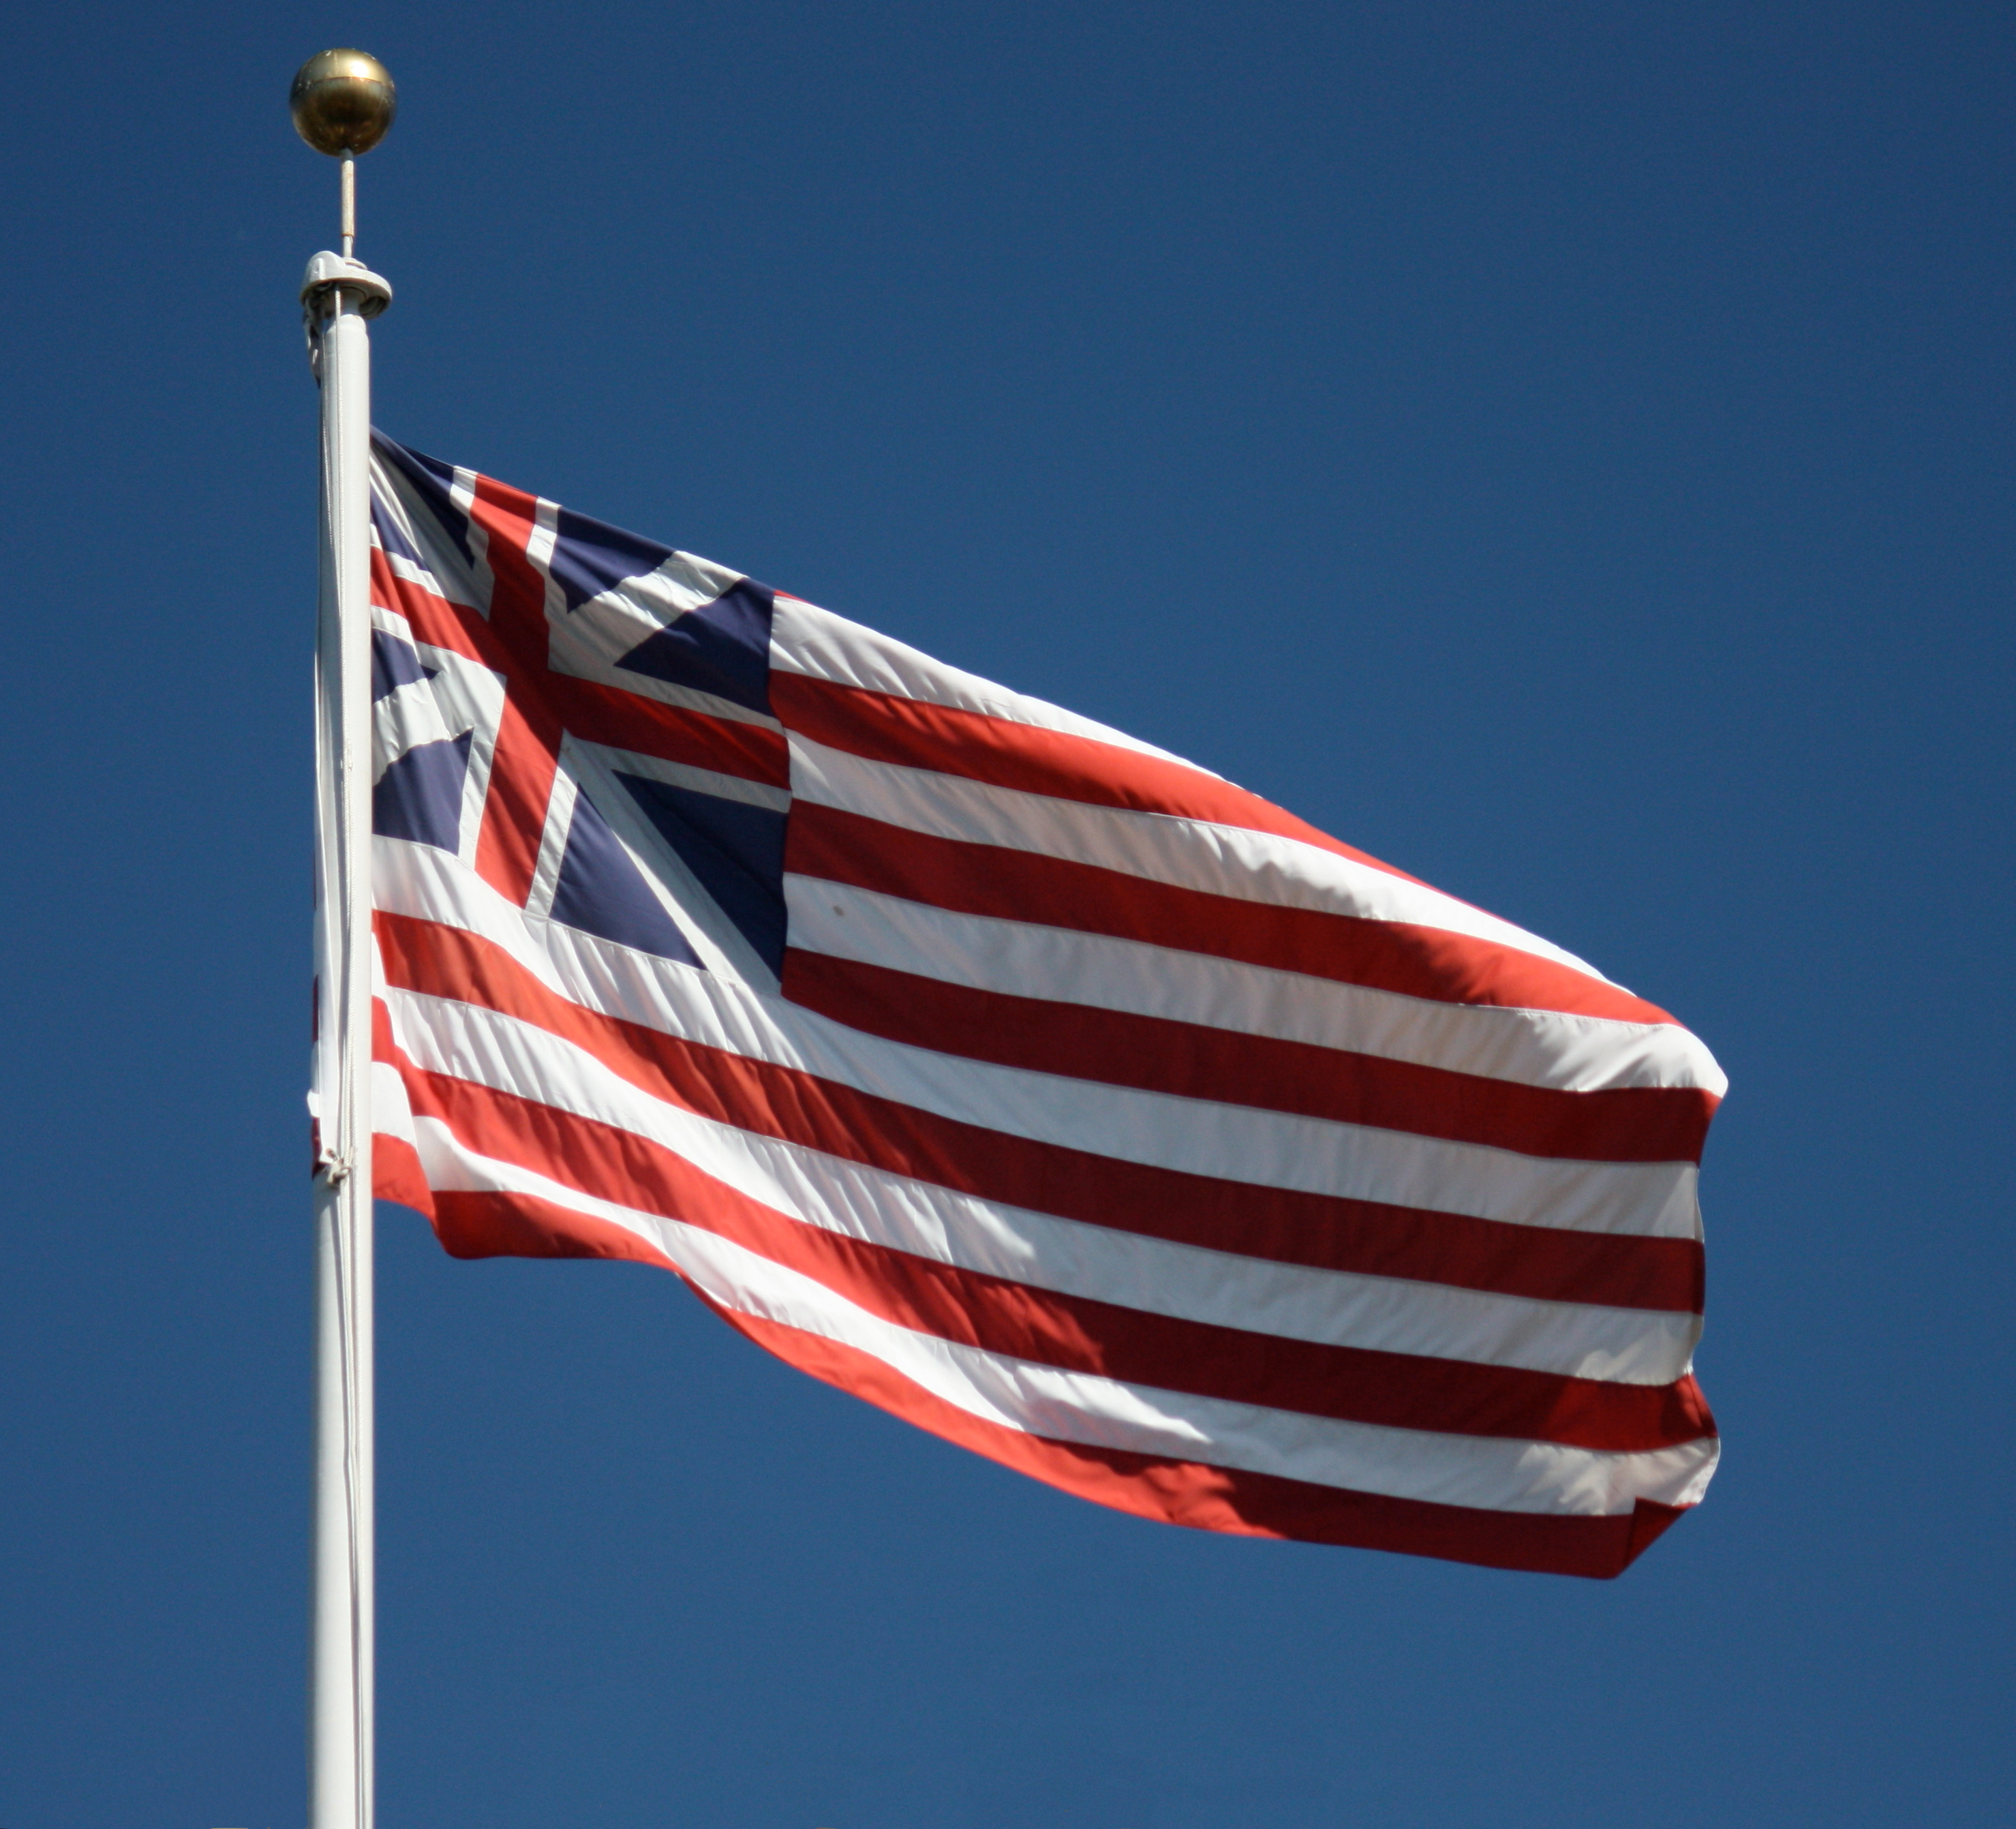 Grand Union Flag - Wikipedia